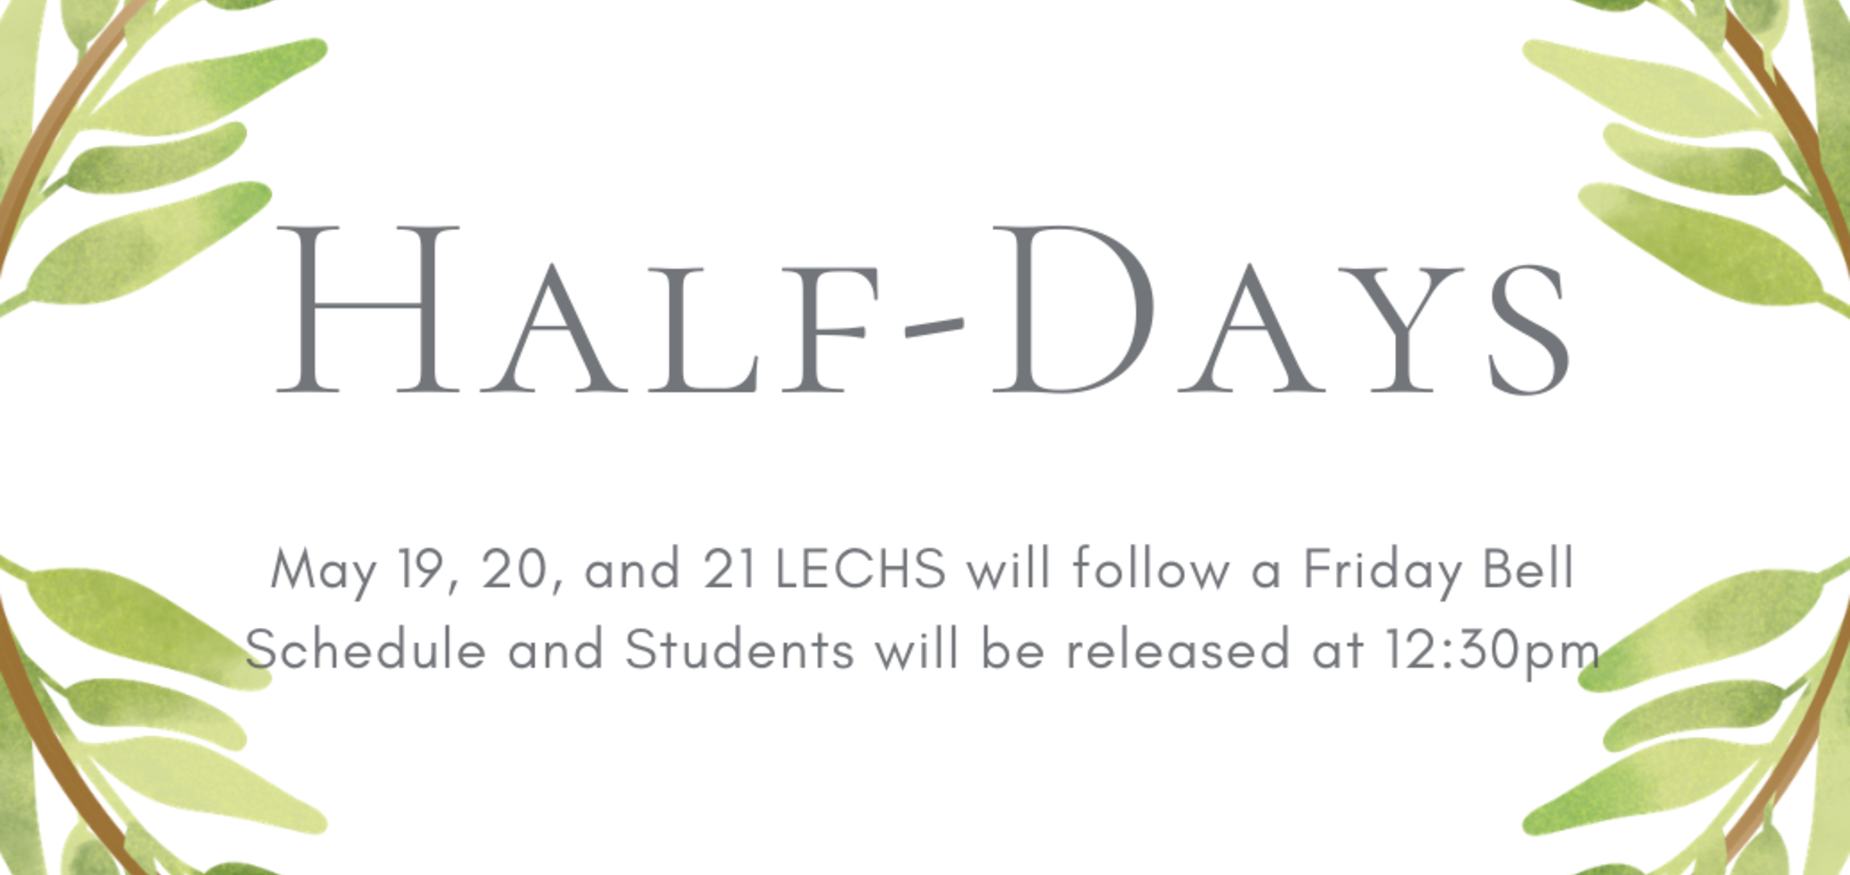 Students will be released at 12:30 May 19-21